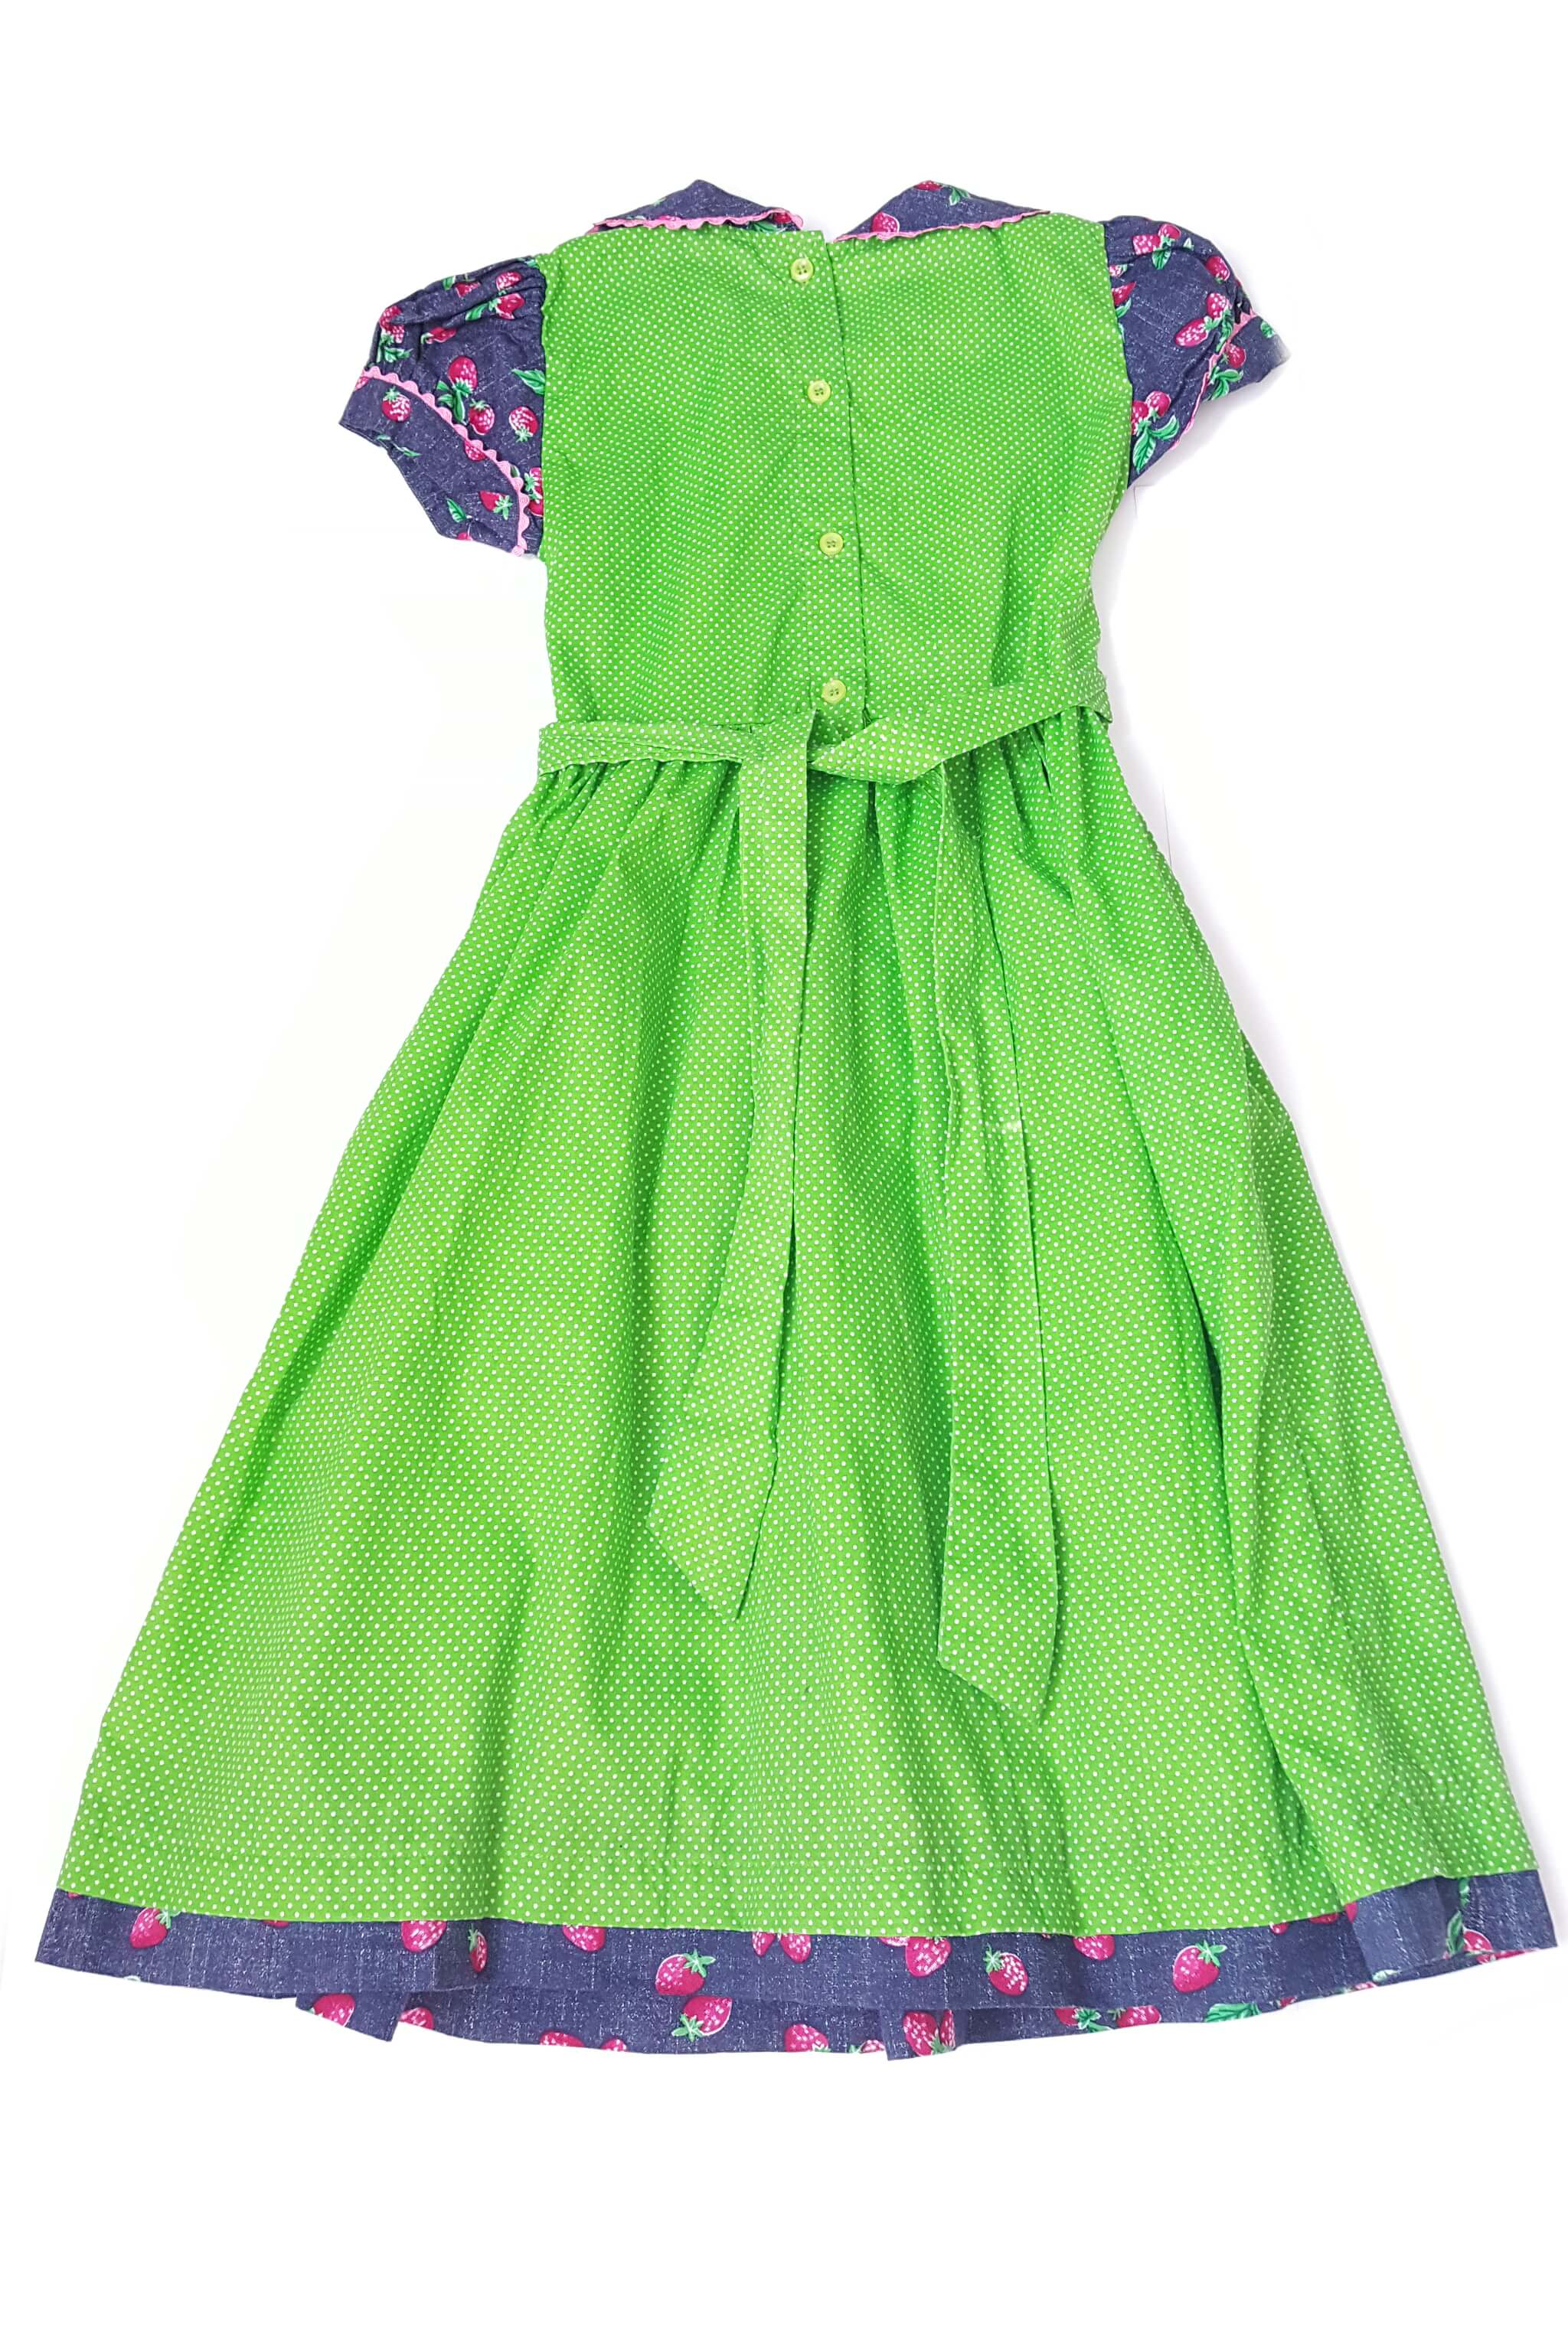 Back of short sleeved apple green pin dot Jade dress with contrasting strawberry print peter pan collar, and traditional hand-smocked bodice with button back and sash to tie at waist